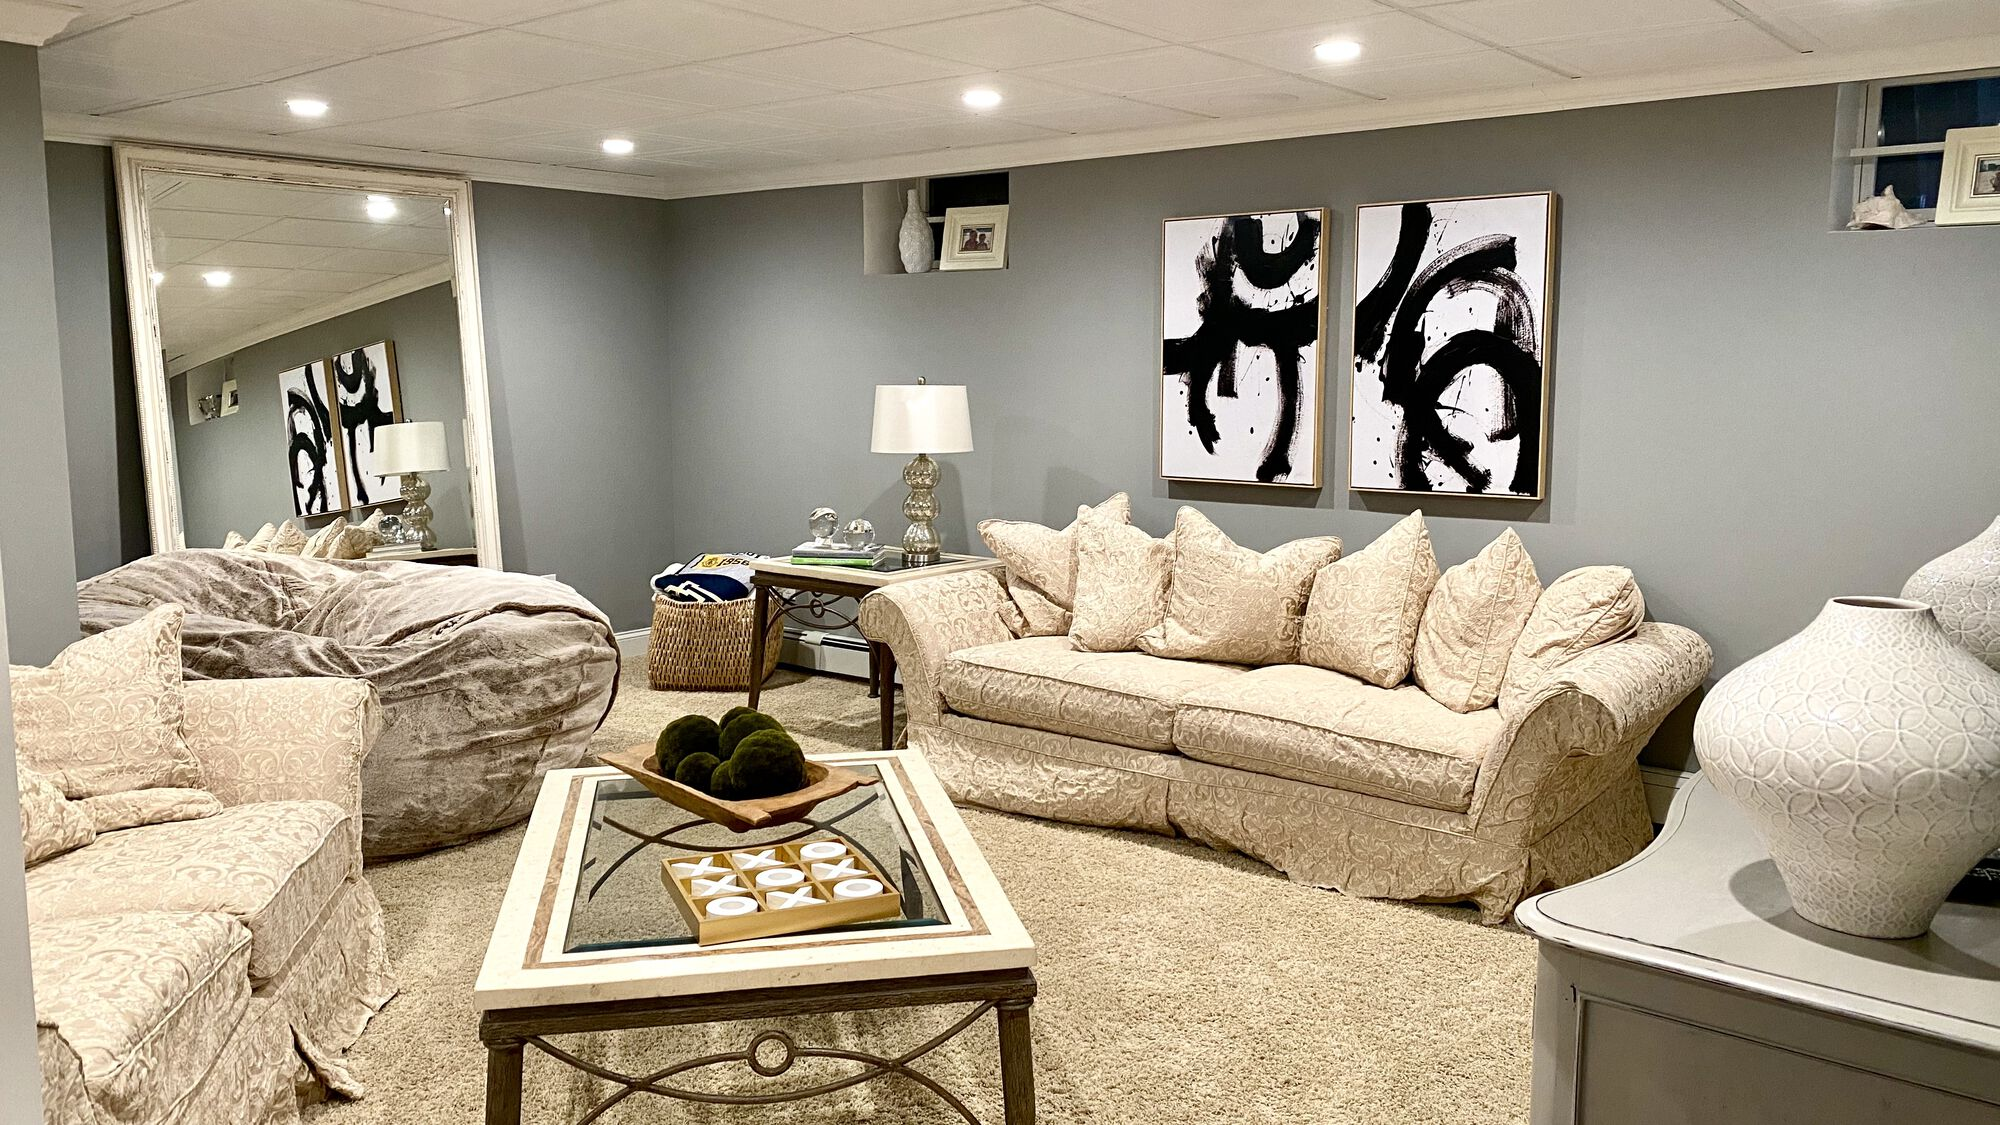 Finished Basement Rec Room in Sussex County NJ